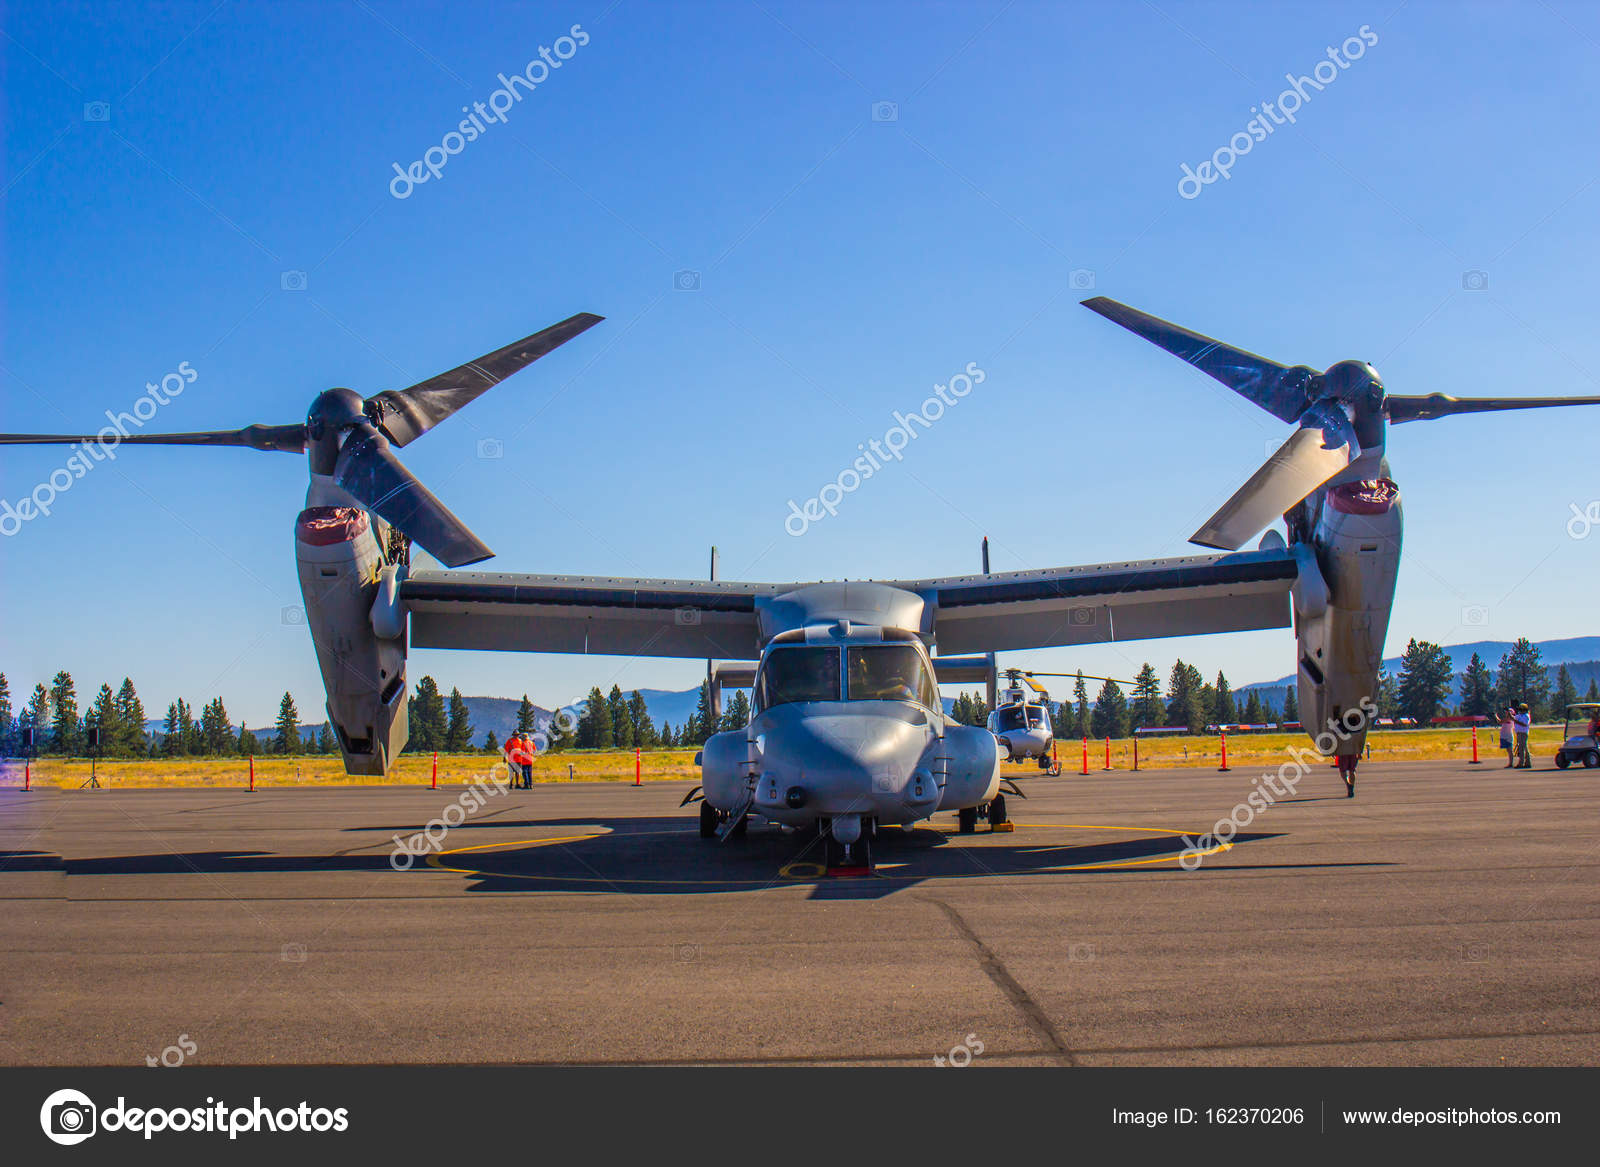 Large Cargo Plane With Both Propellers & Jet Engine – Stock